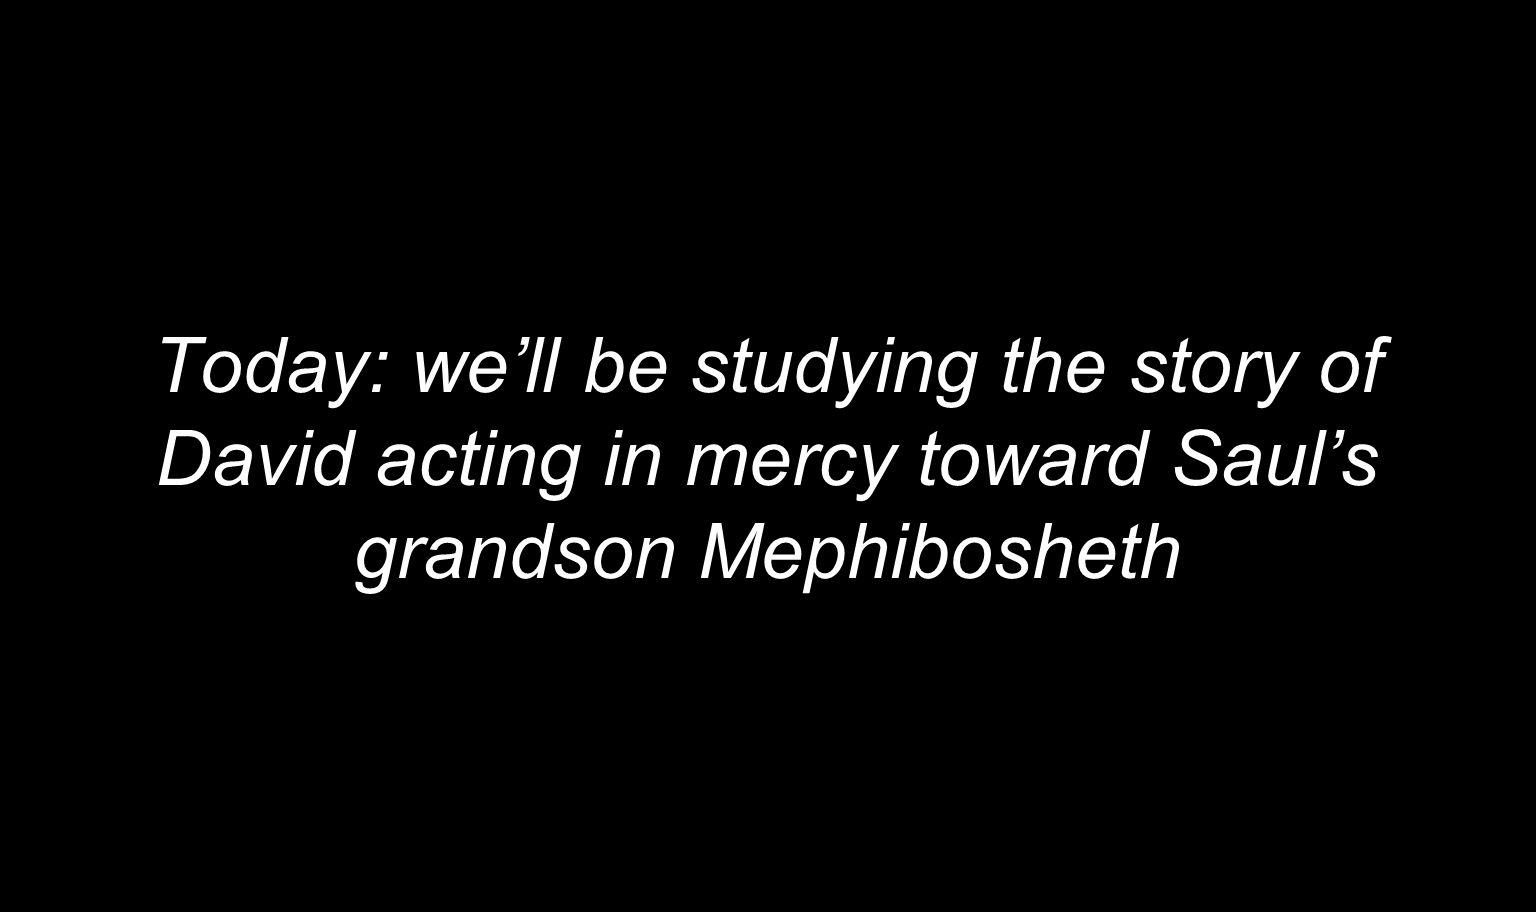 Today: we'll be studying the story of David acting in mercy toward Saul's grandson Mephibosheth